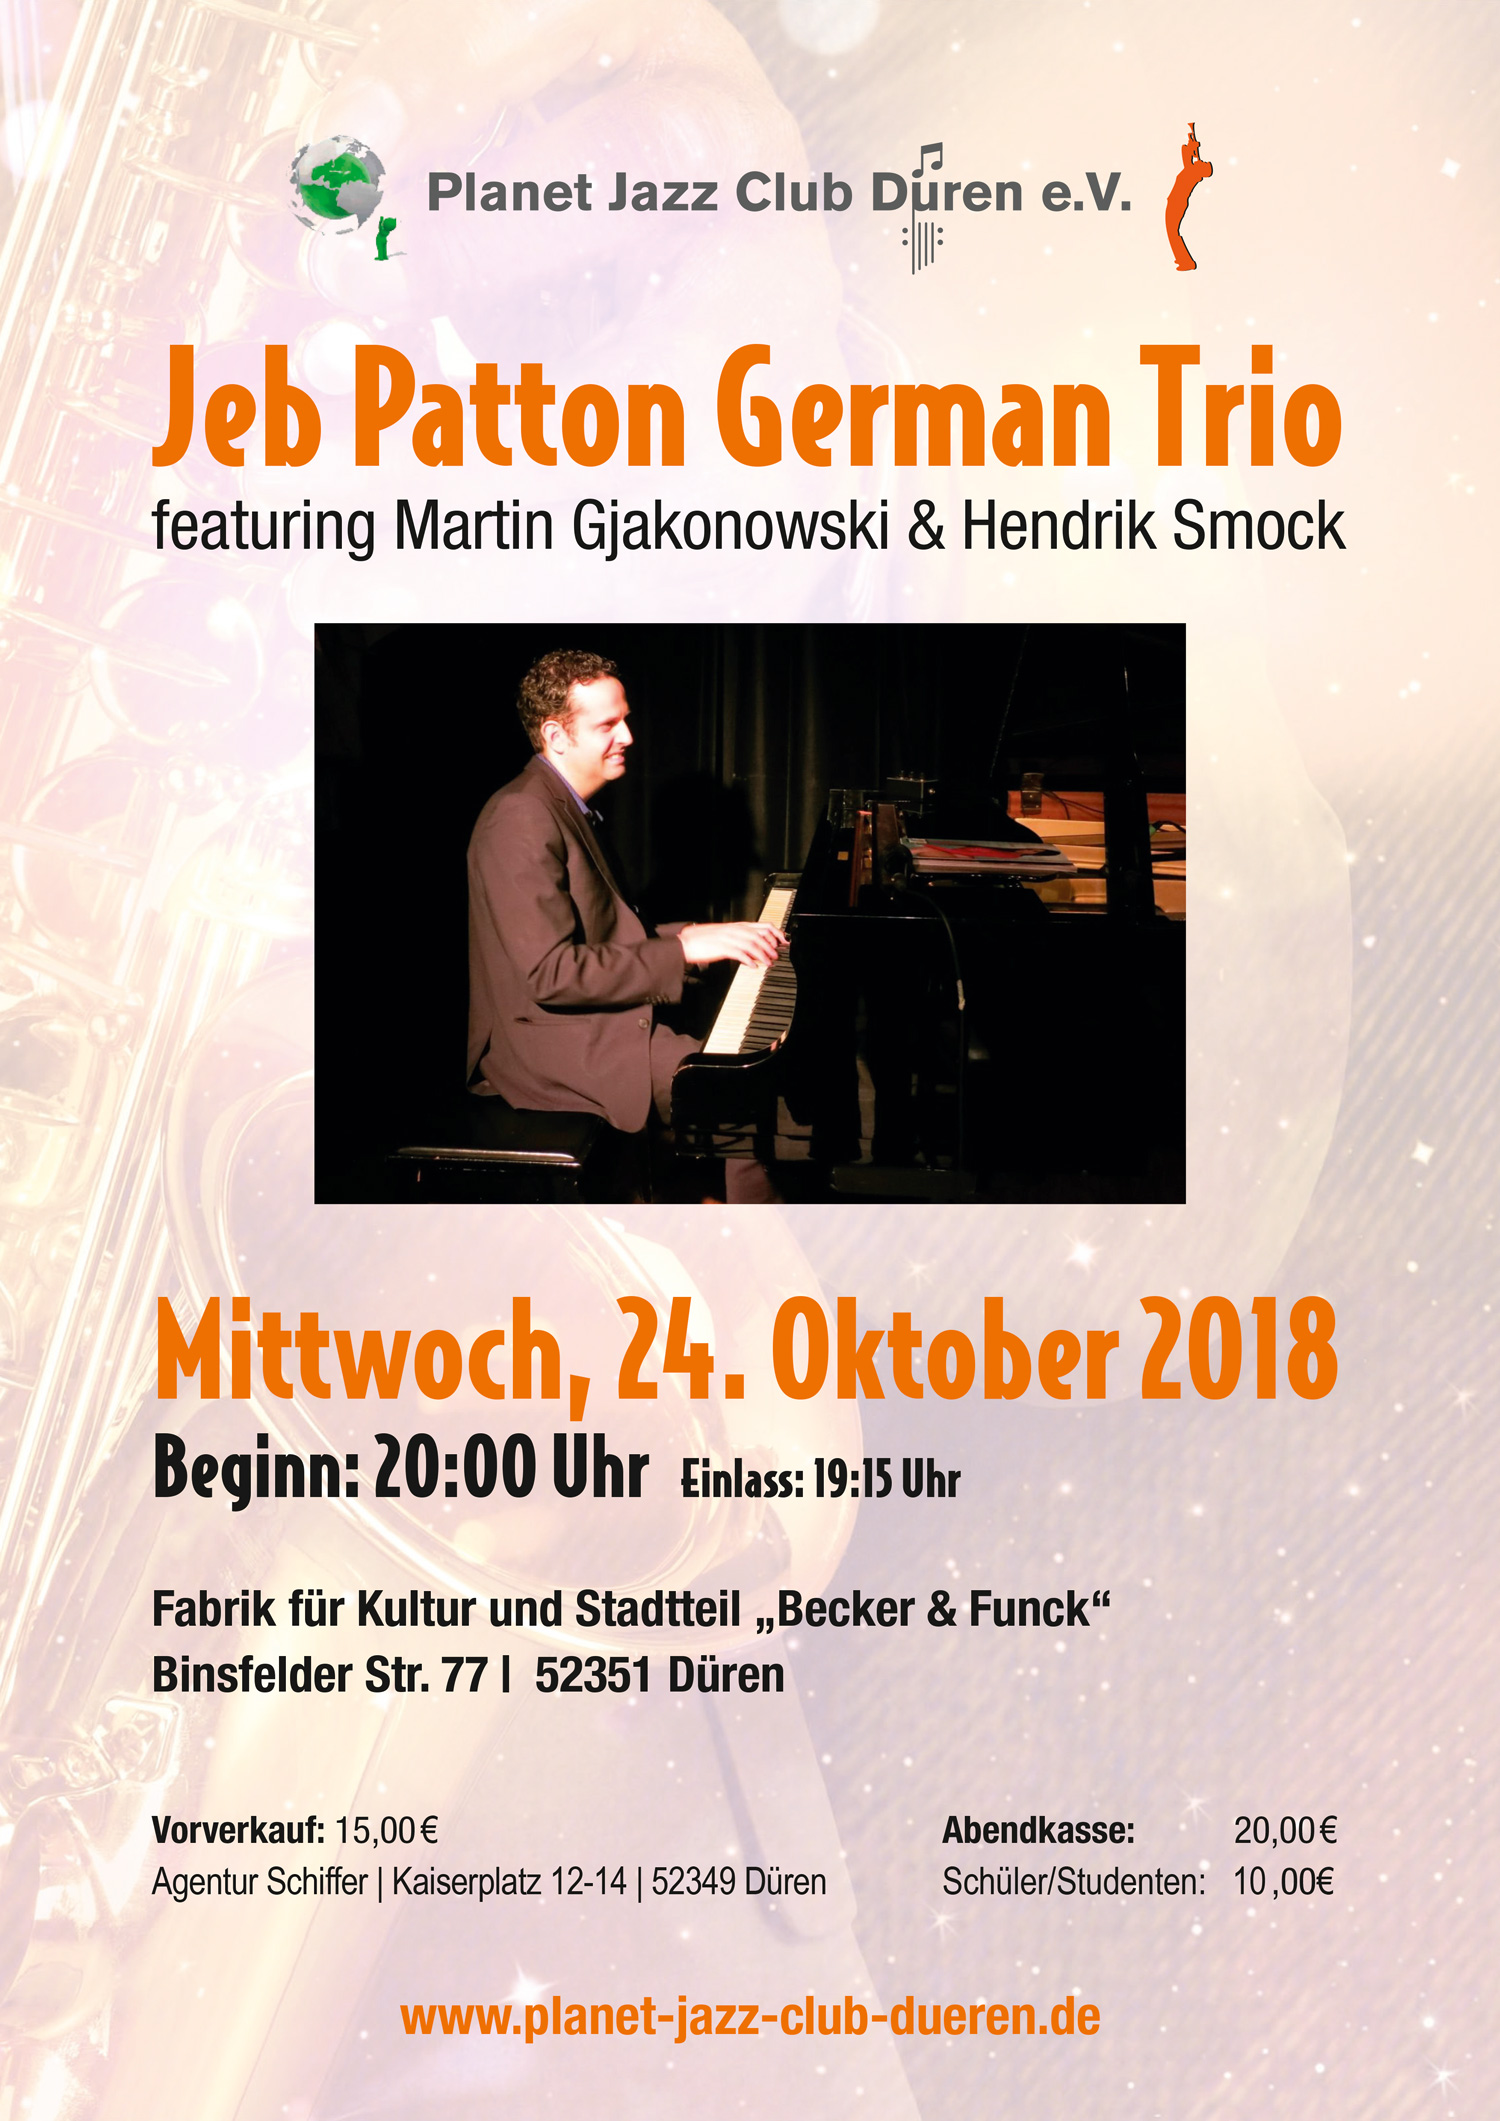 jep-patton-german-trio-plakat